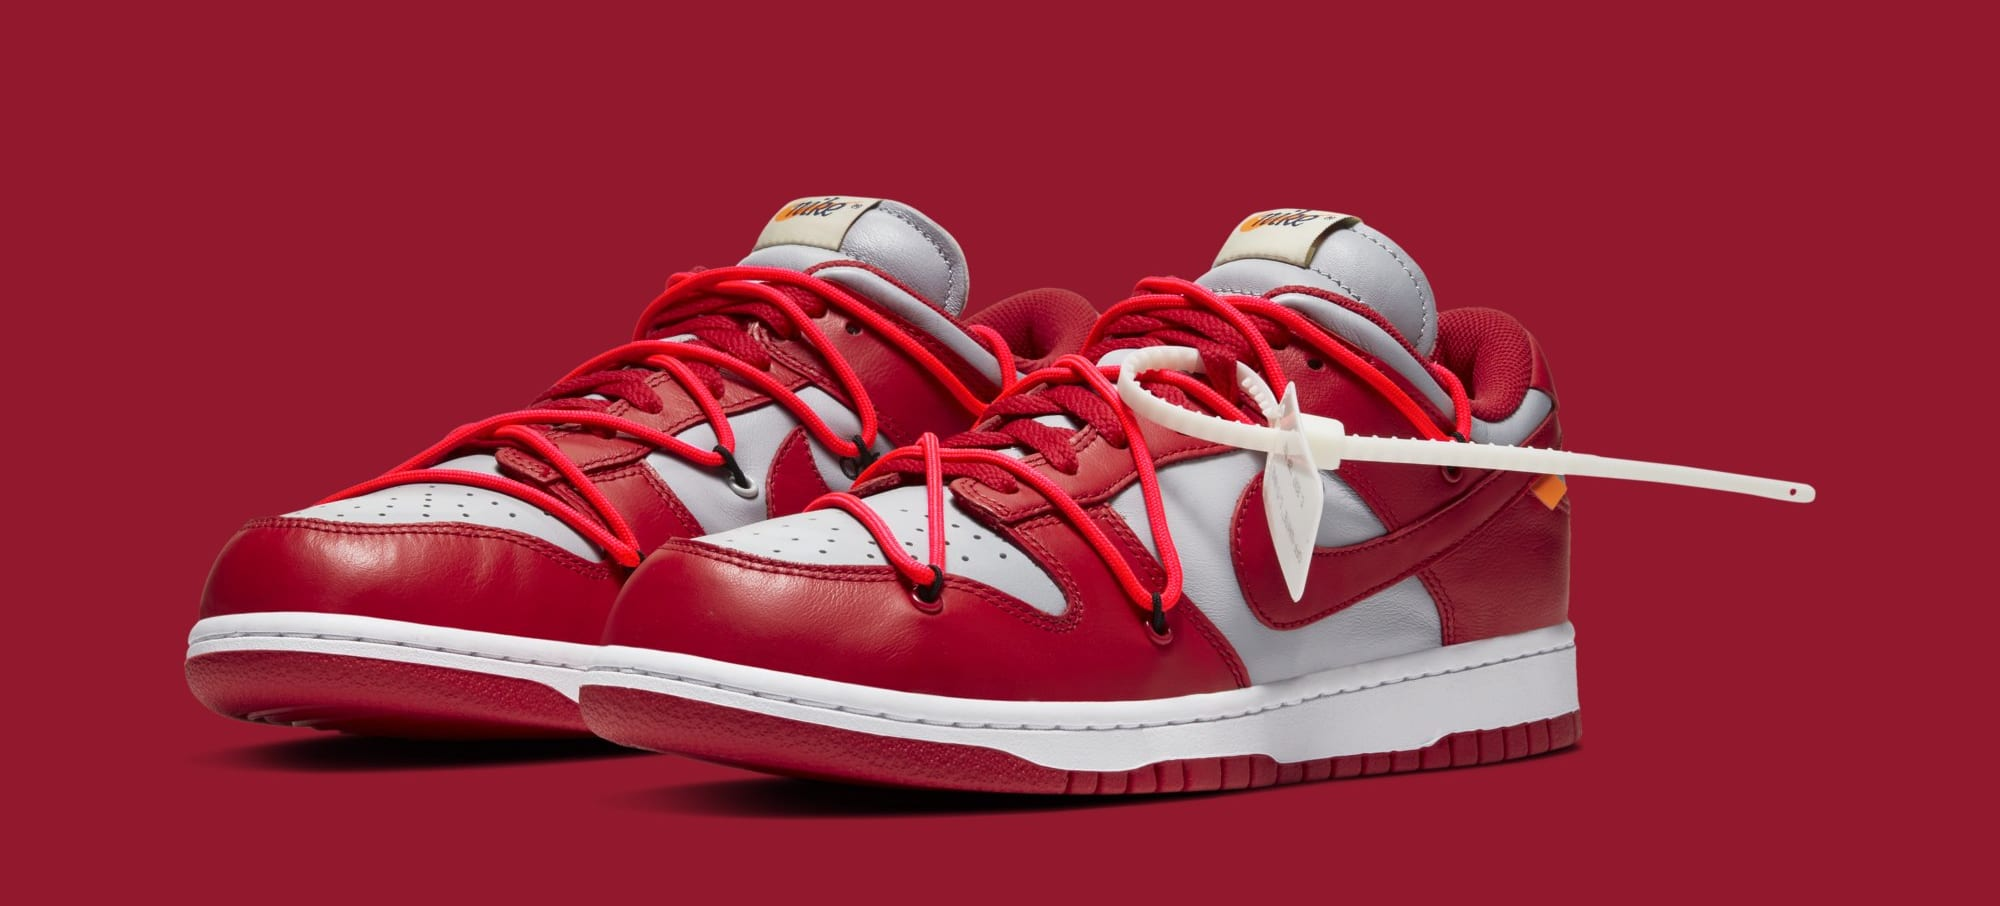 Off-White x Nike Dunk Low 'University Red/Wolf Grey' CT0856-600 (Pair)